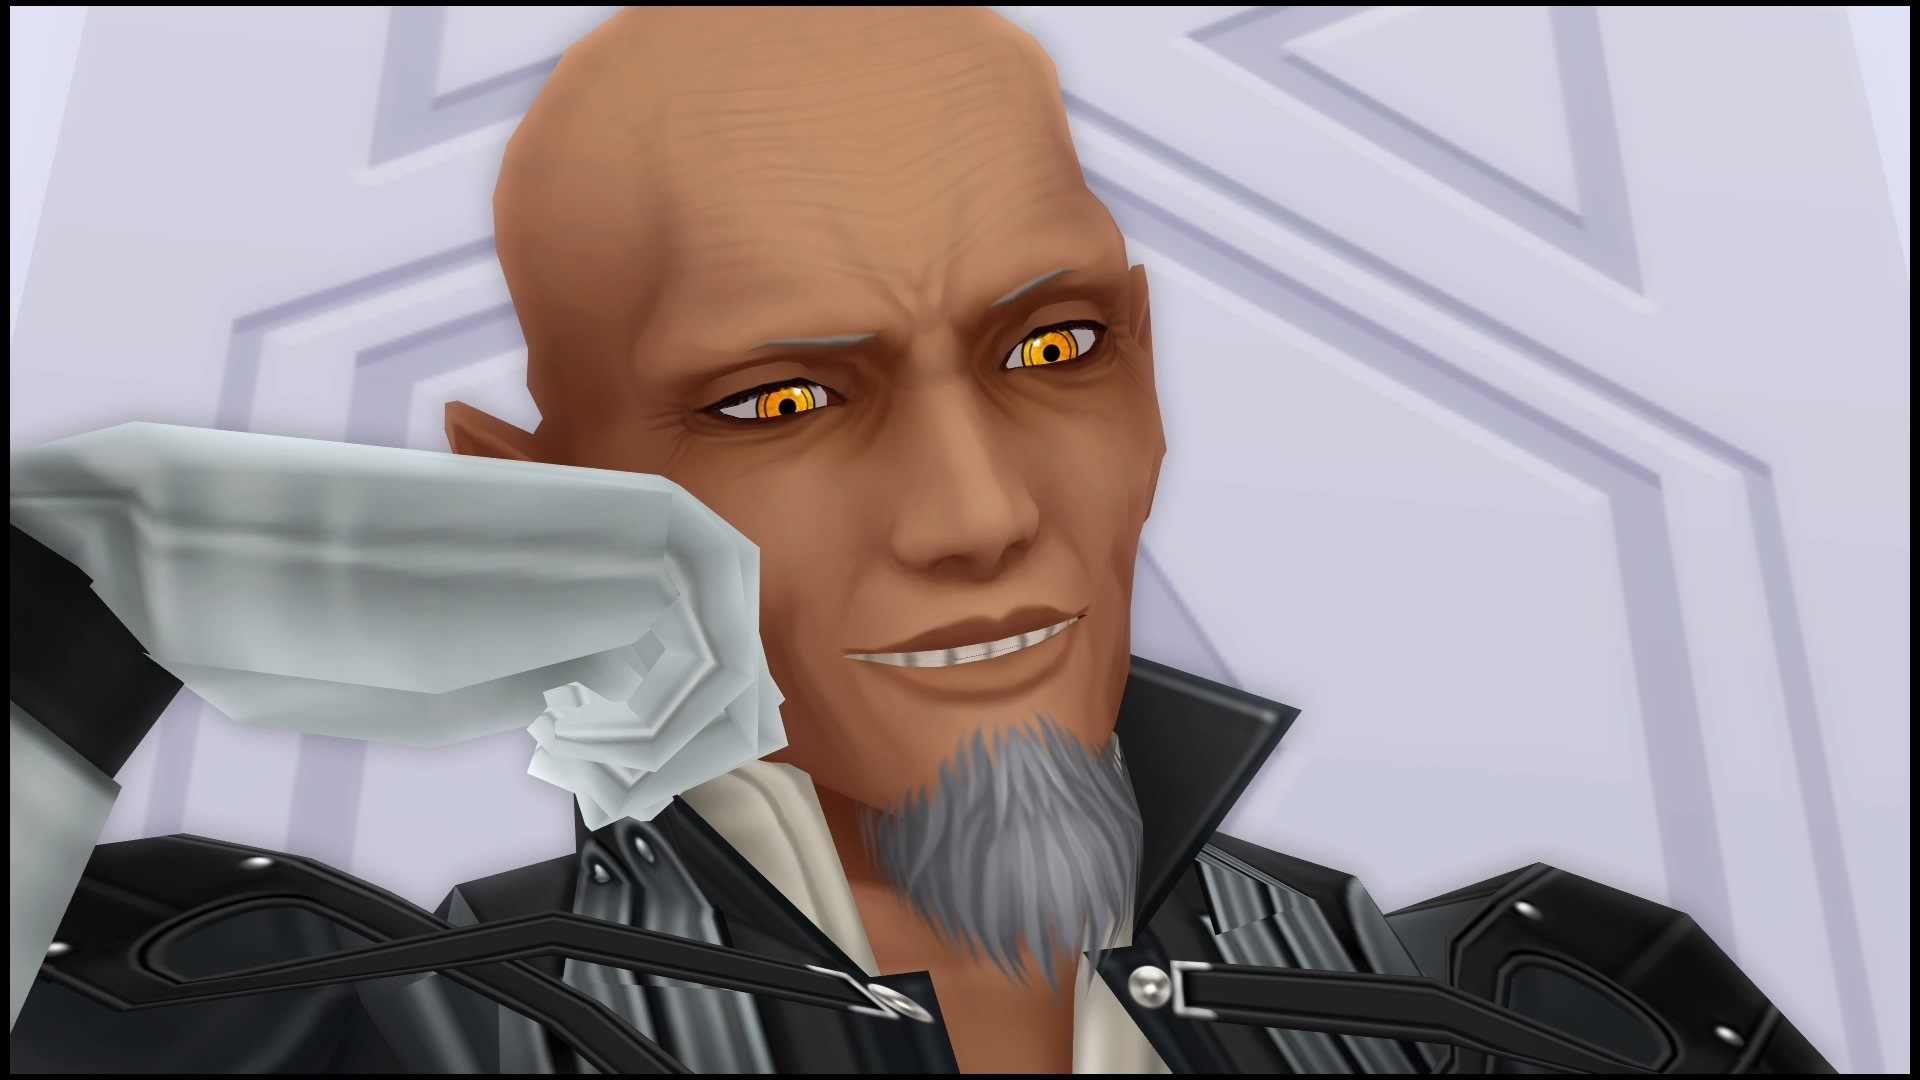 Kingdom Hearts for Dummies - Xehanort